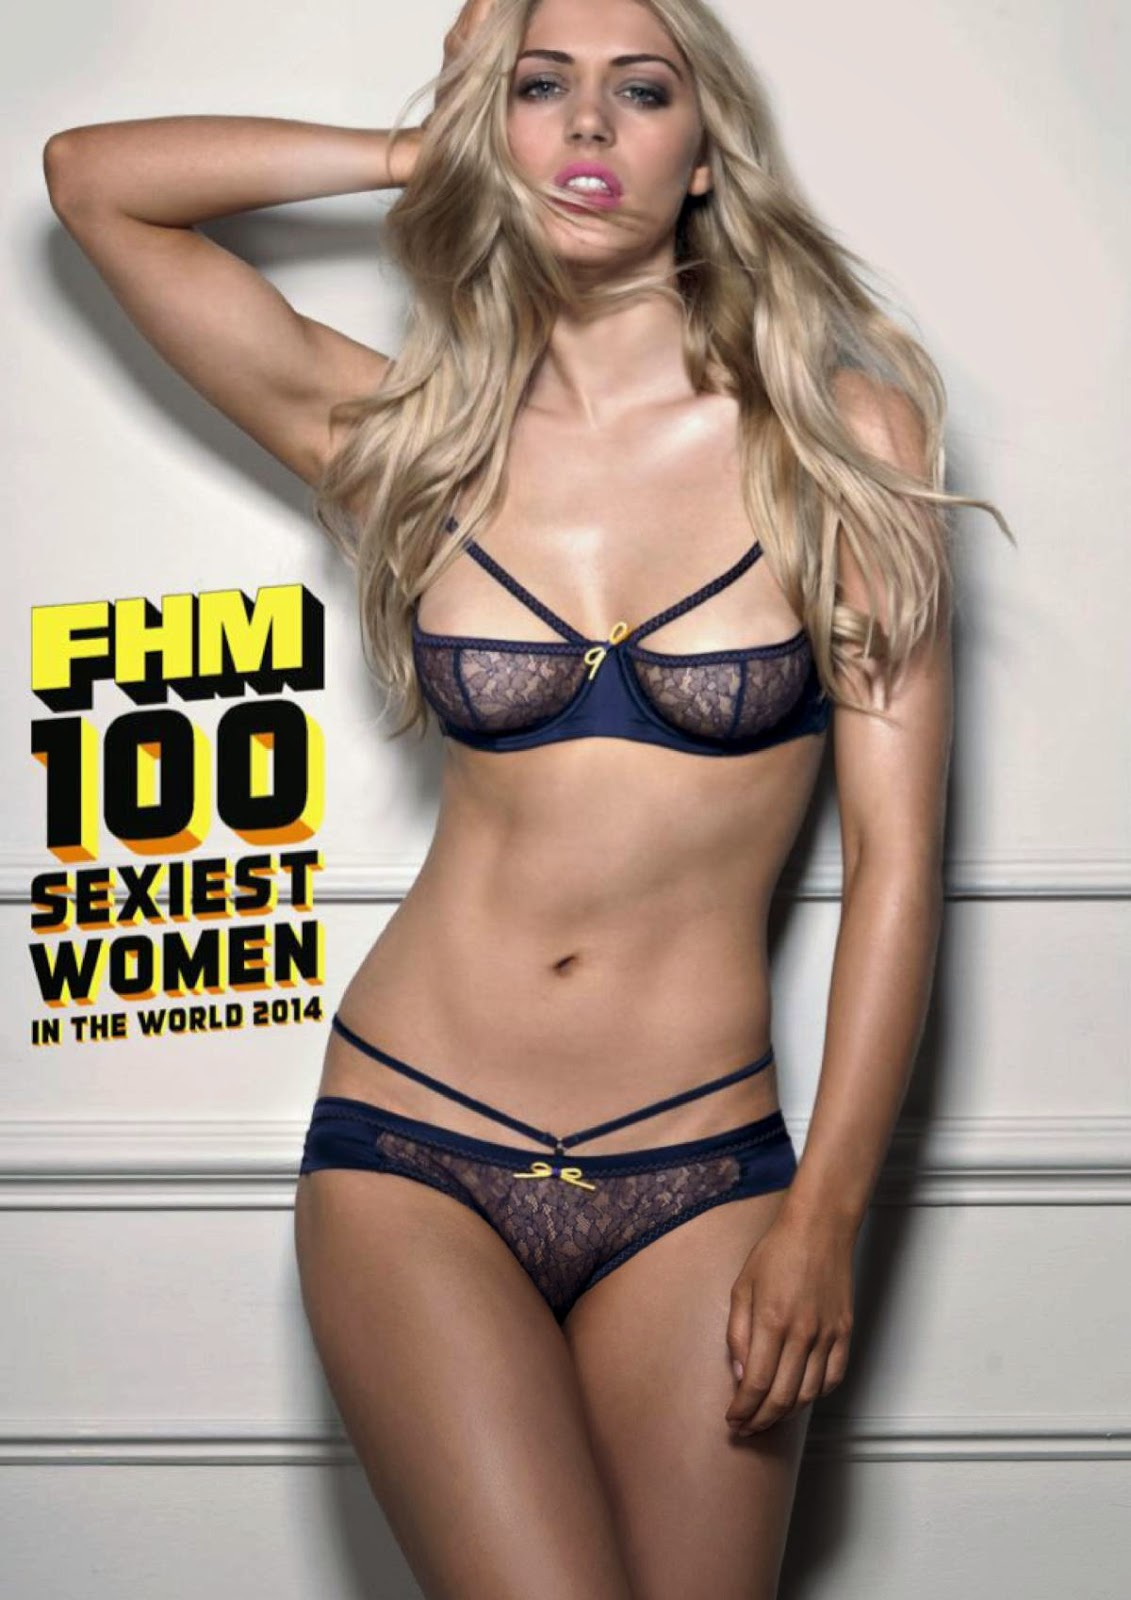 FHM 100 Sexiest Women Of 2014